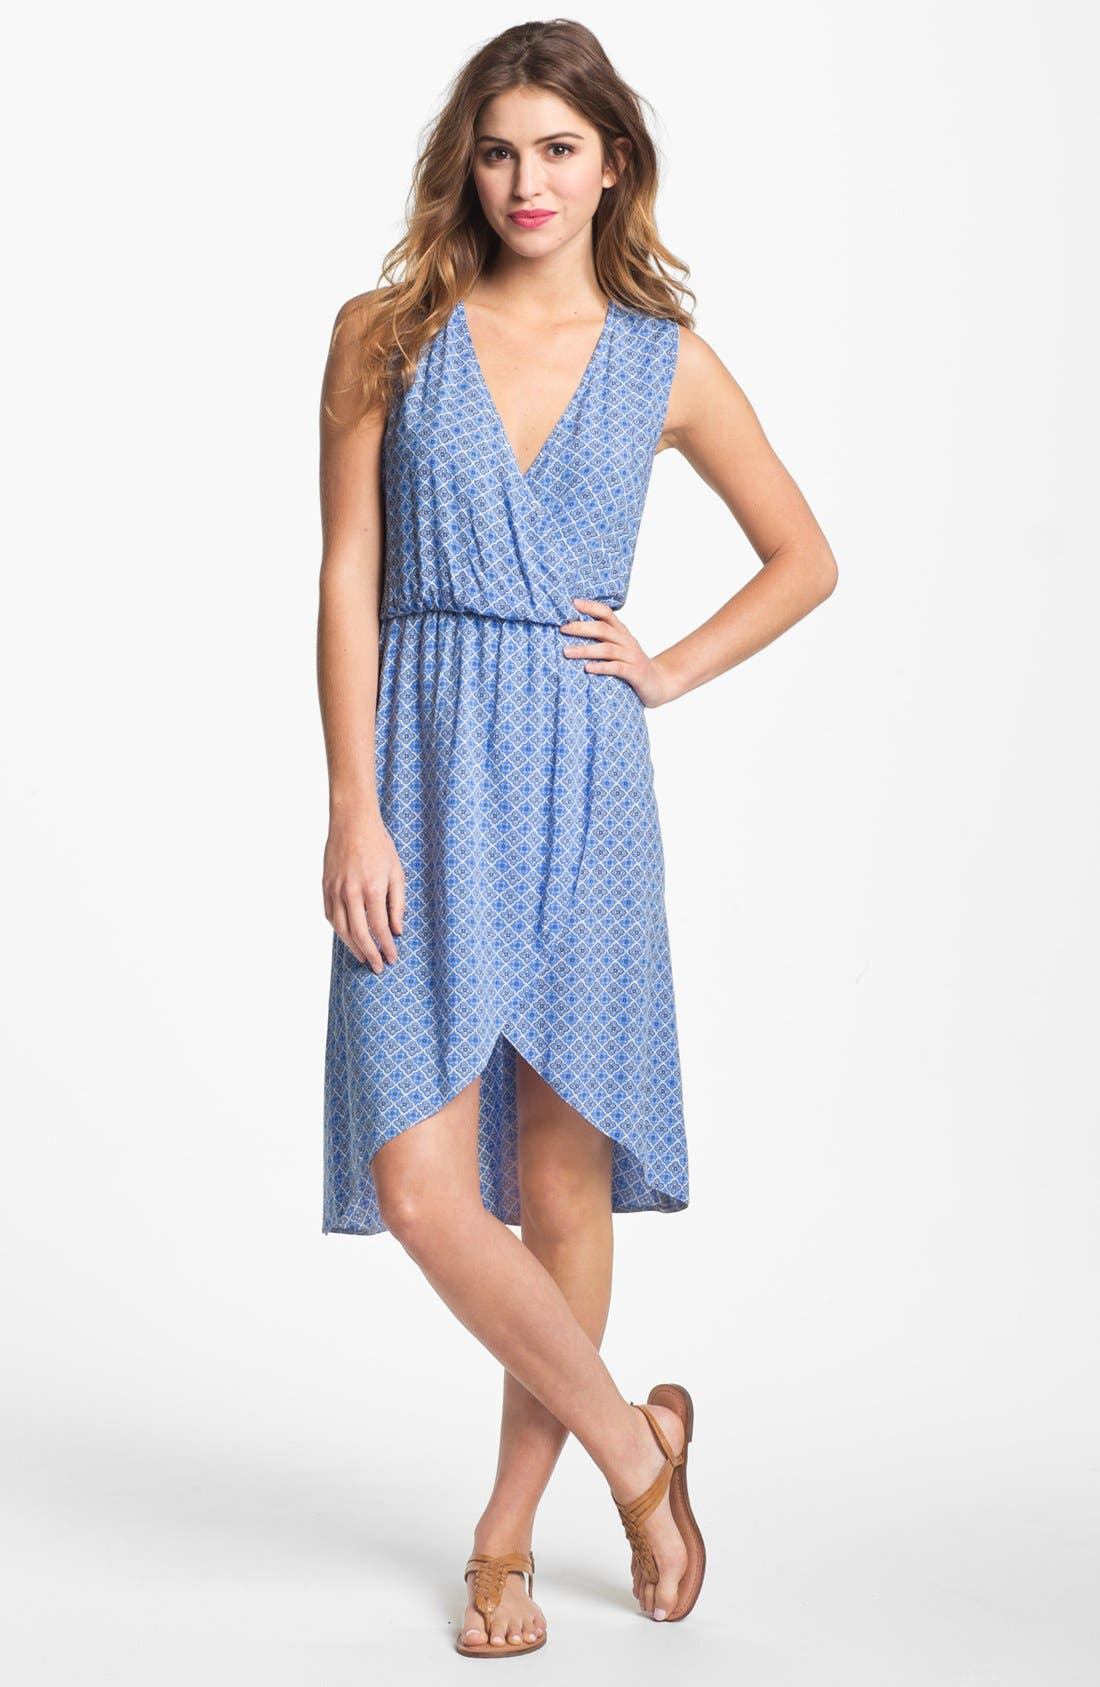 Alternate Image 1 Selected - Two by Vince Camuto Cutout Faux Wrap Dress